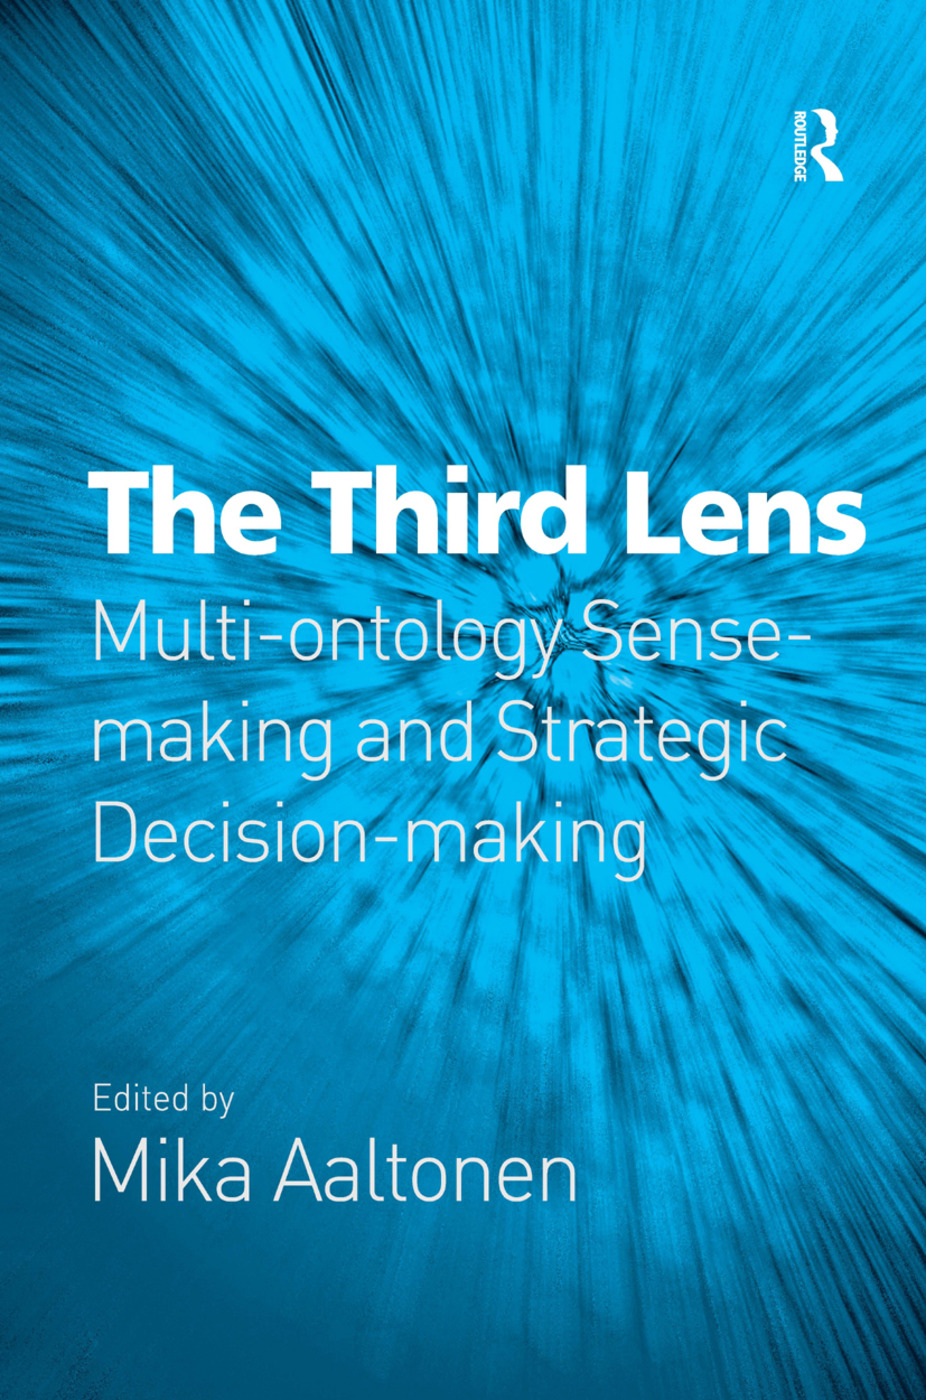 The Third Lens: Multi-ontology Sense-making and Strategic Decision-making book cover